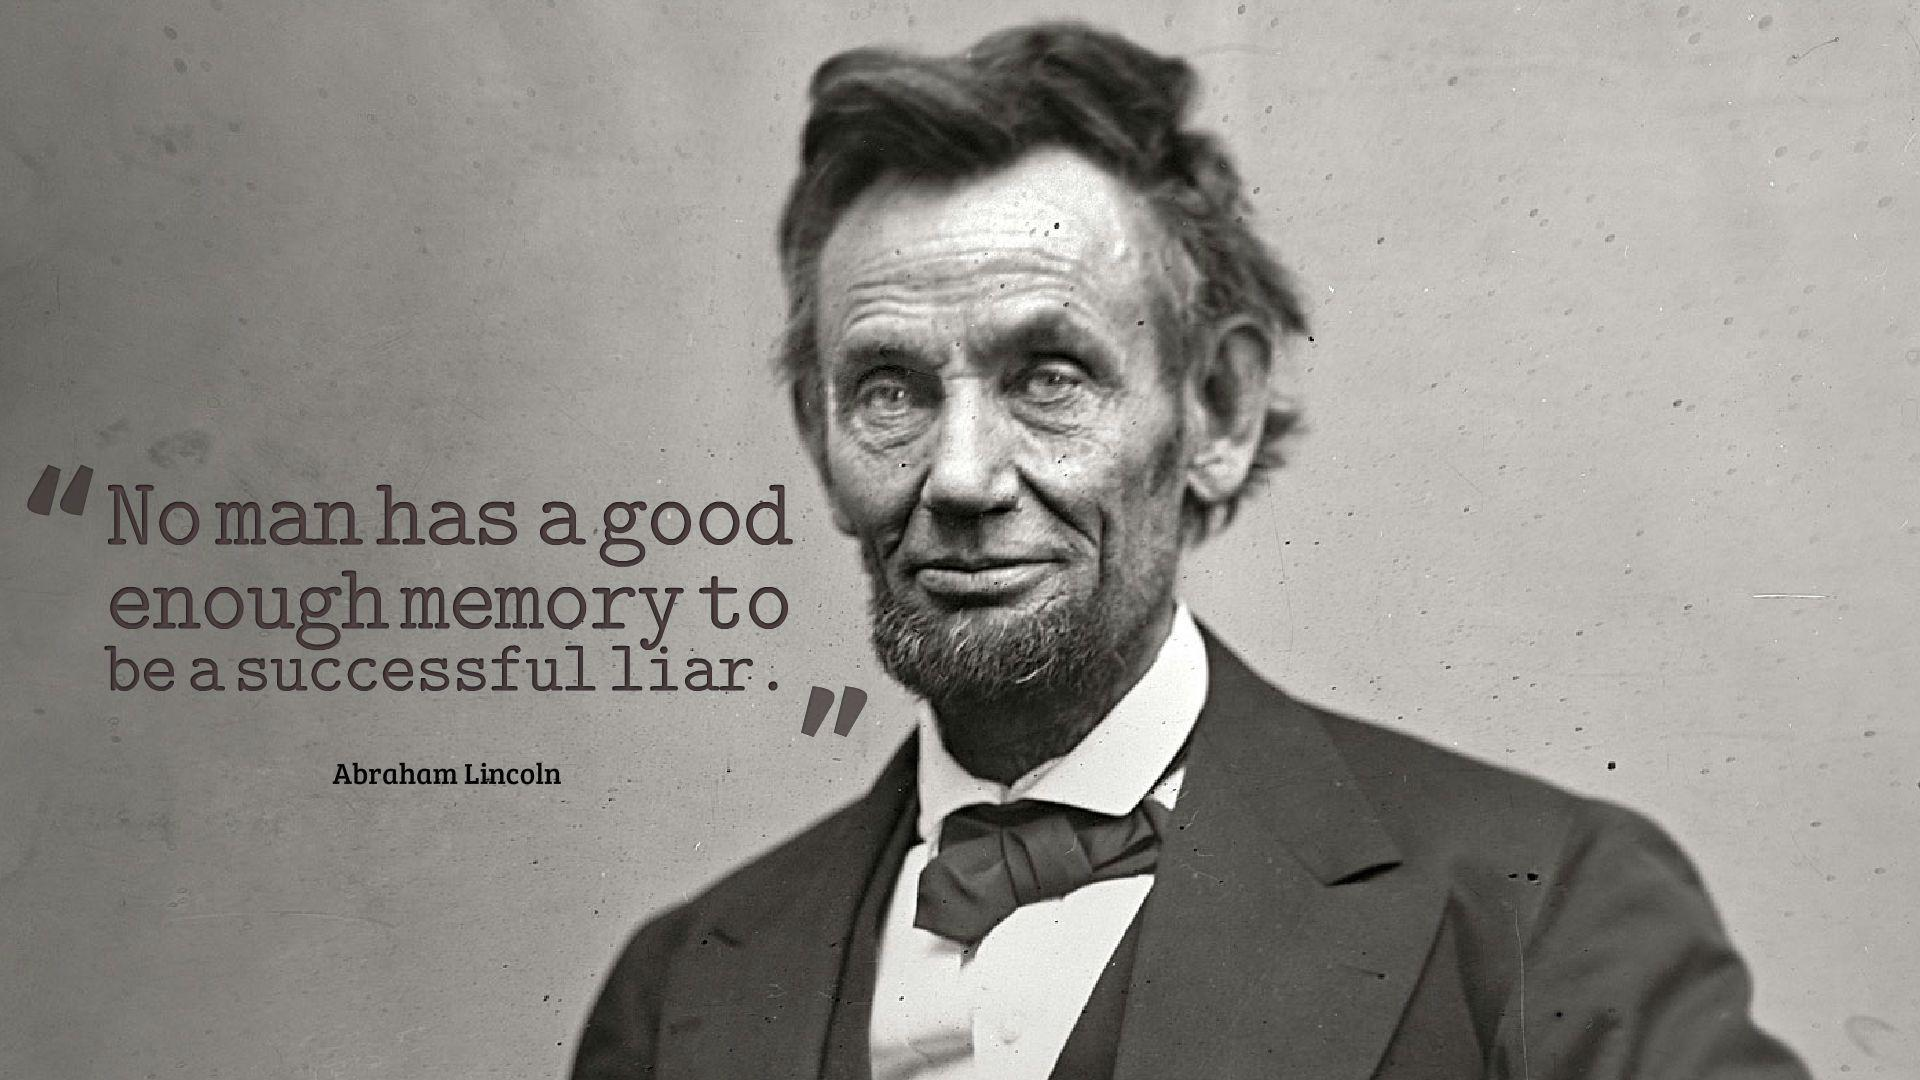 Abraham Lincoln Quotes Wallpaper HD 13775 - Baltana